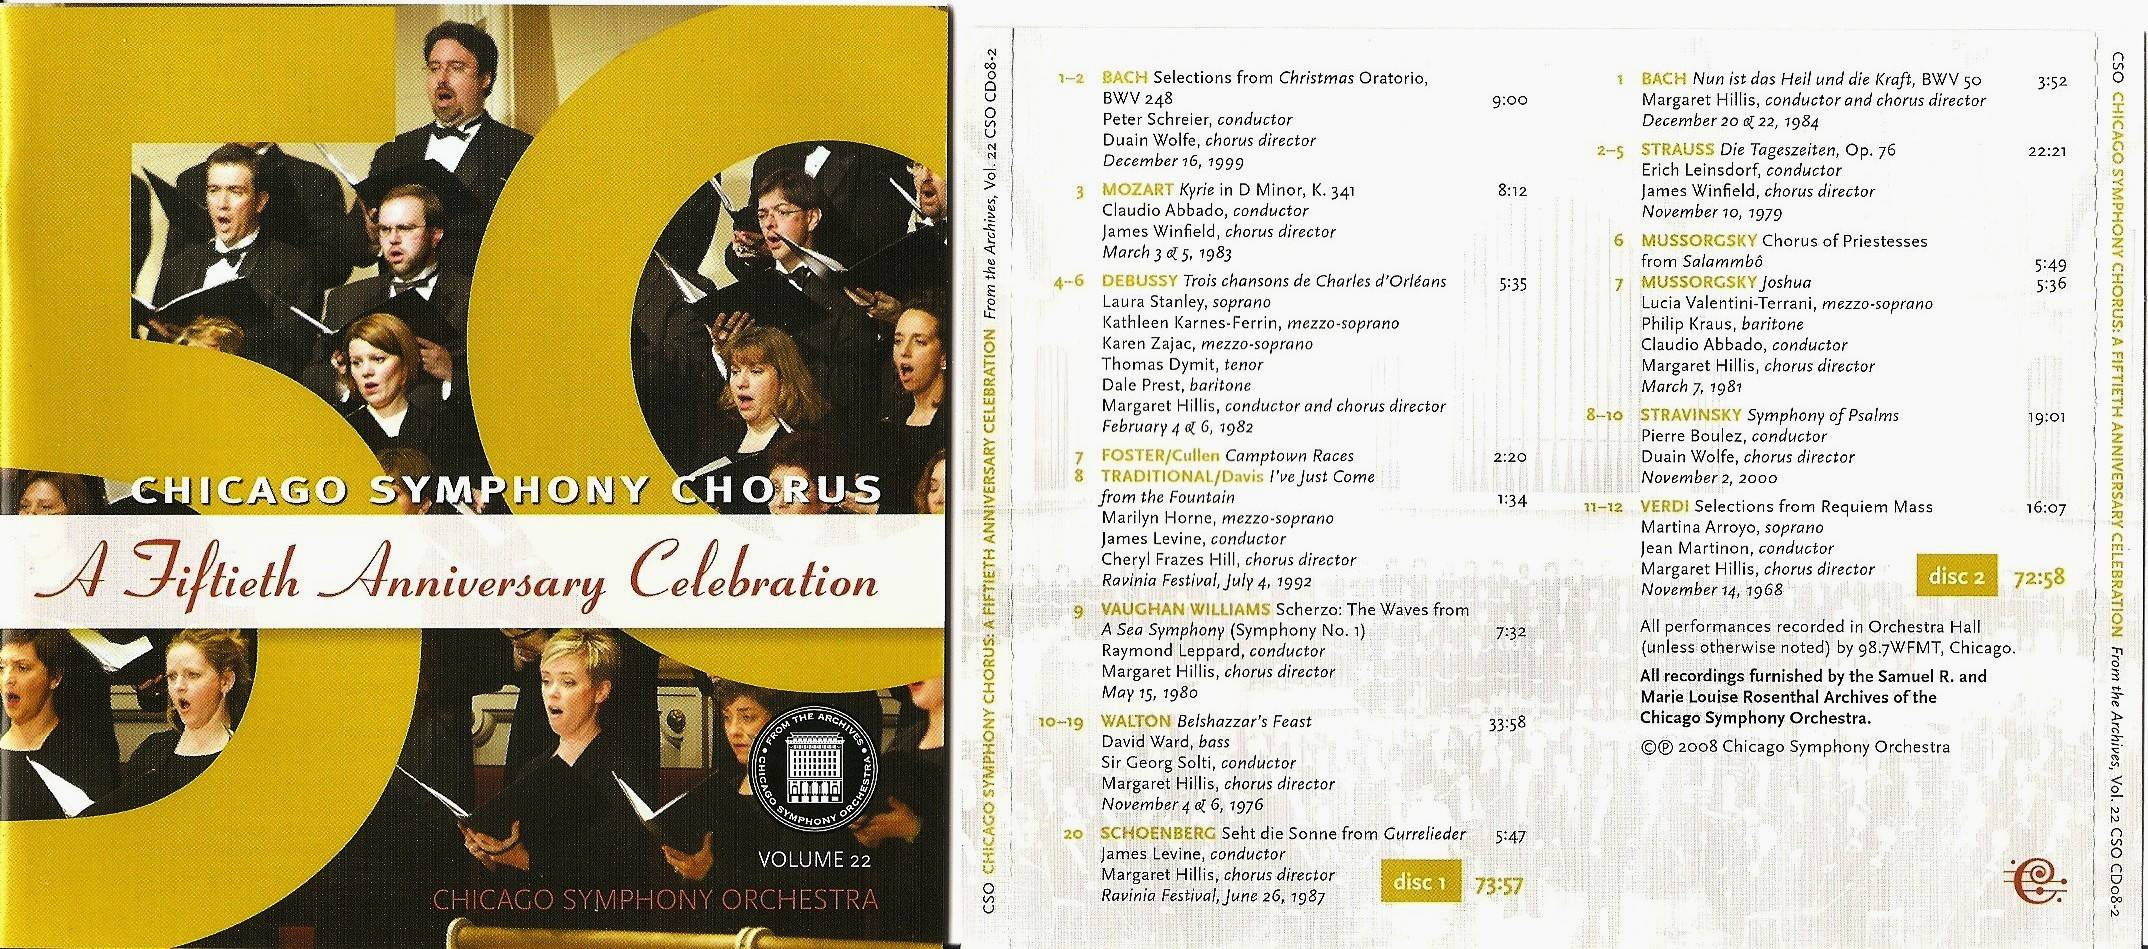 Chicago Symphony Orchestra - From The Archives, Vol.22: Chicago Symphony Chorus: A Fiftieth Anniversary Celebration, 2-CD set (2008)